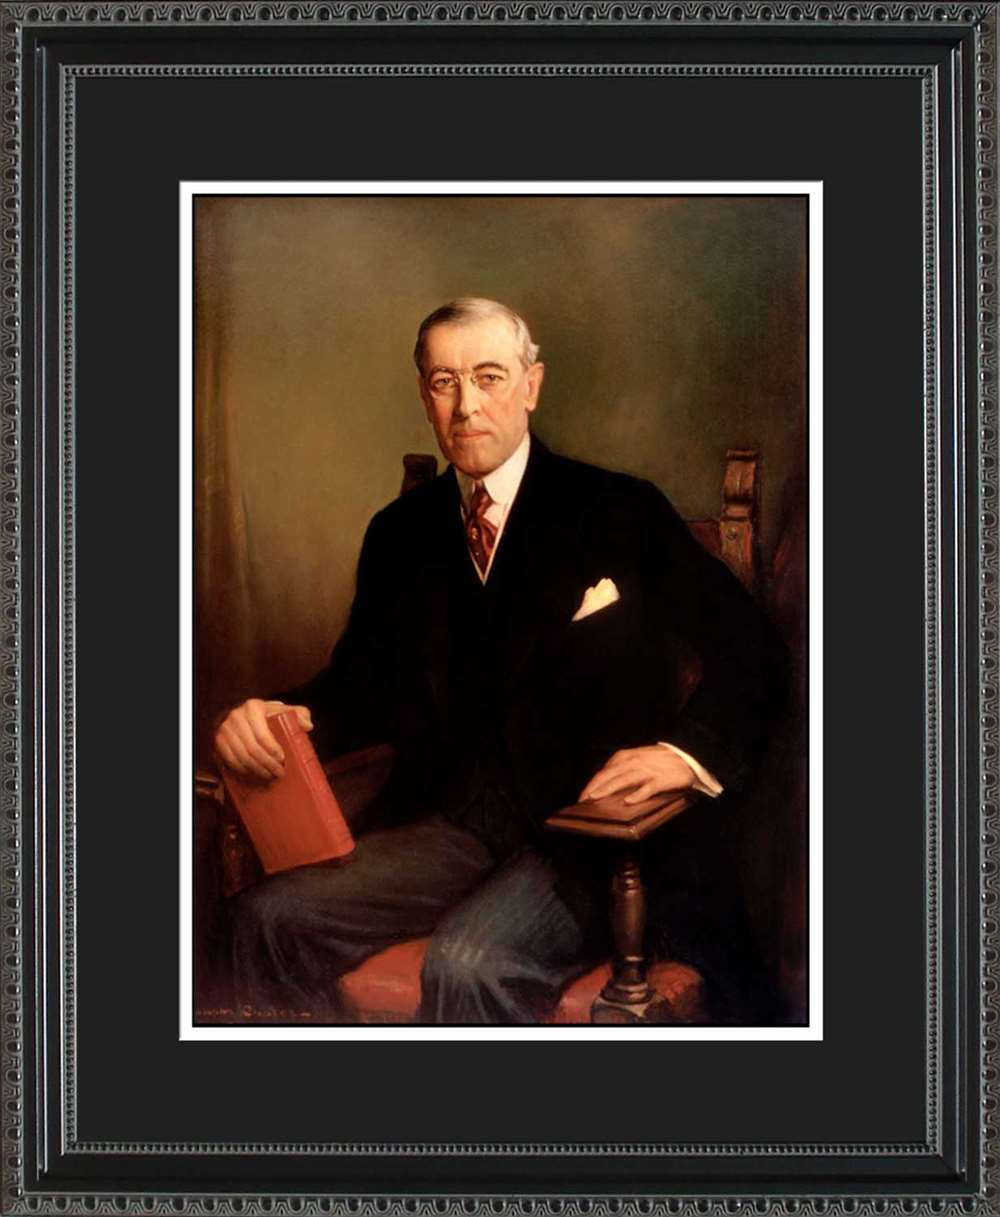 Woodrow Wilson Official President Portrait, 16x20